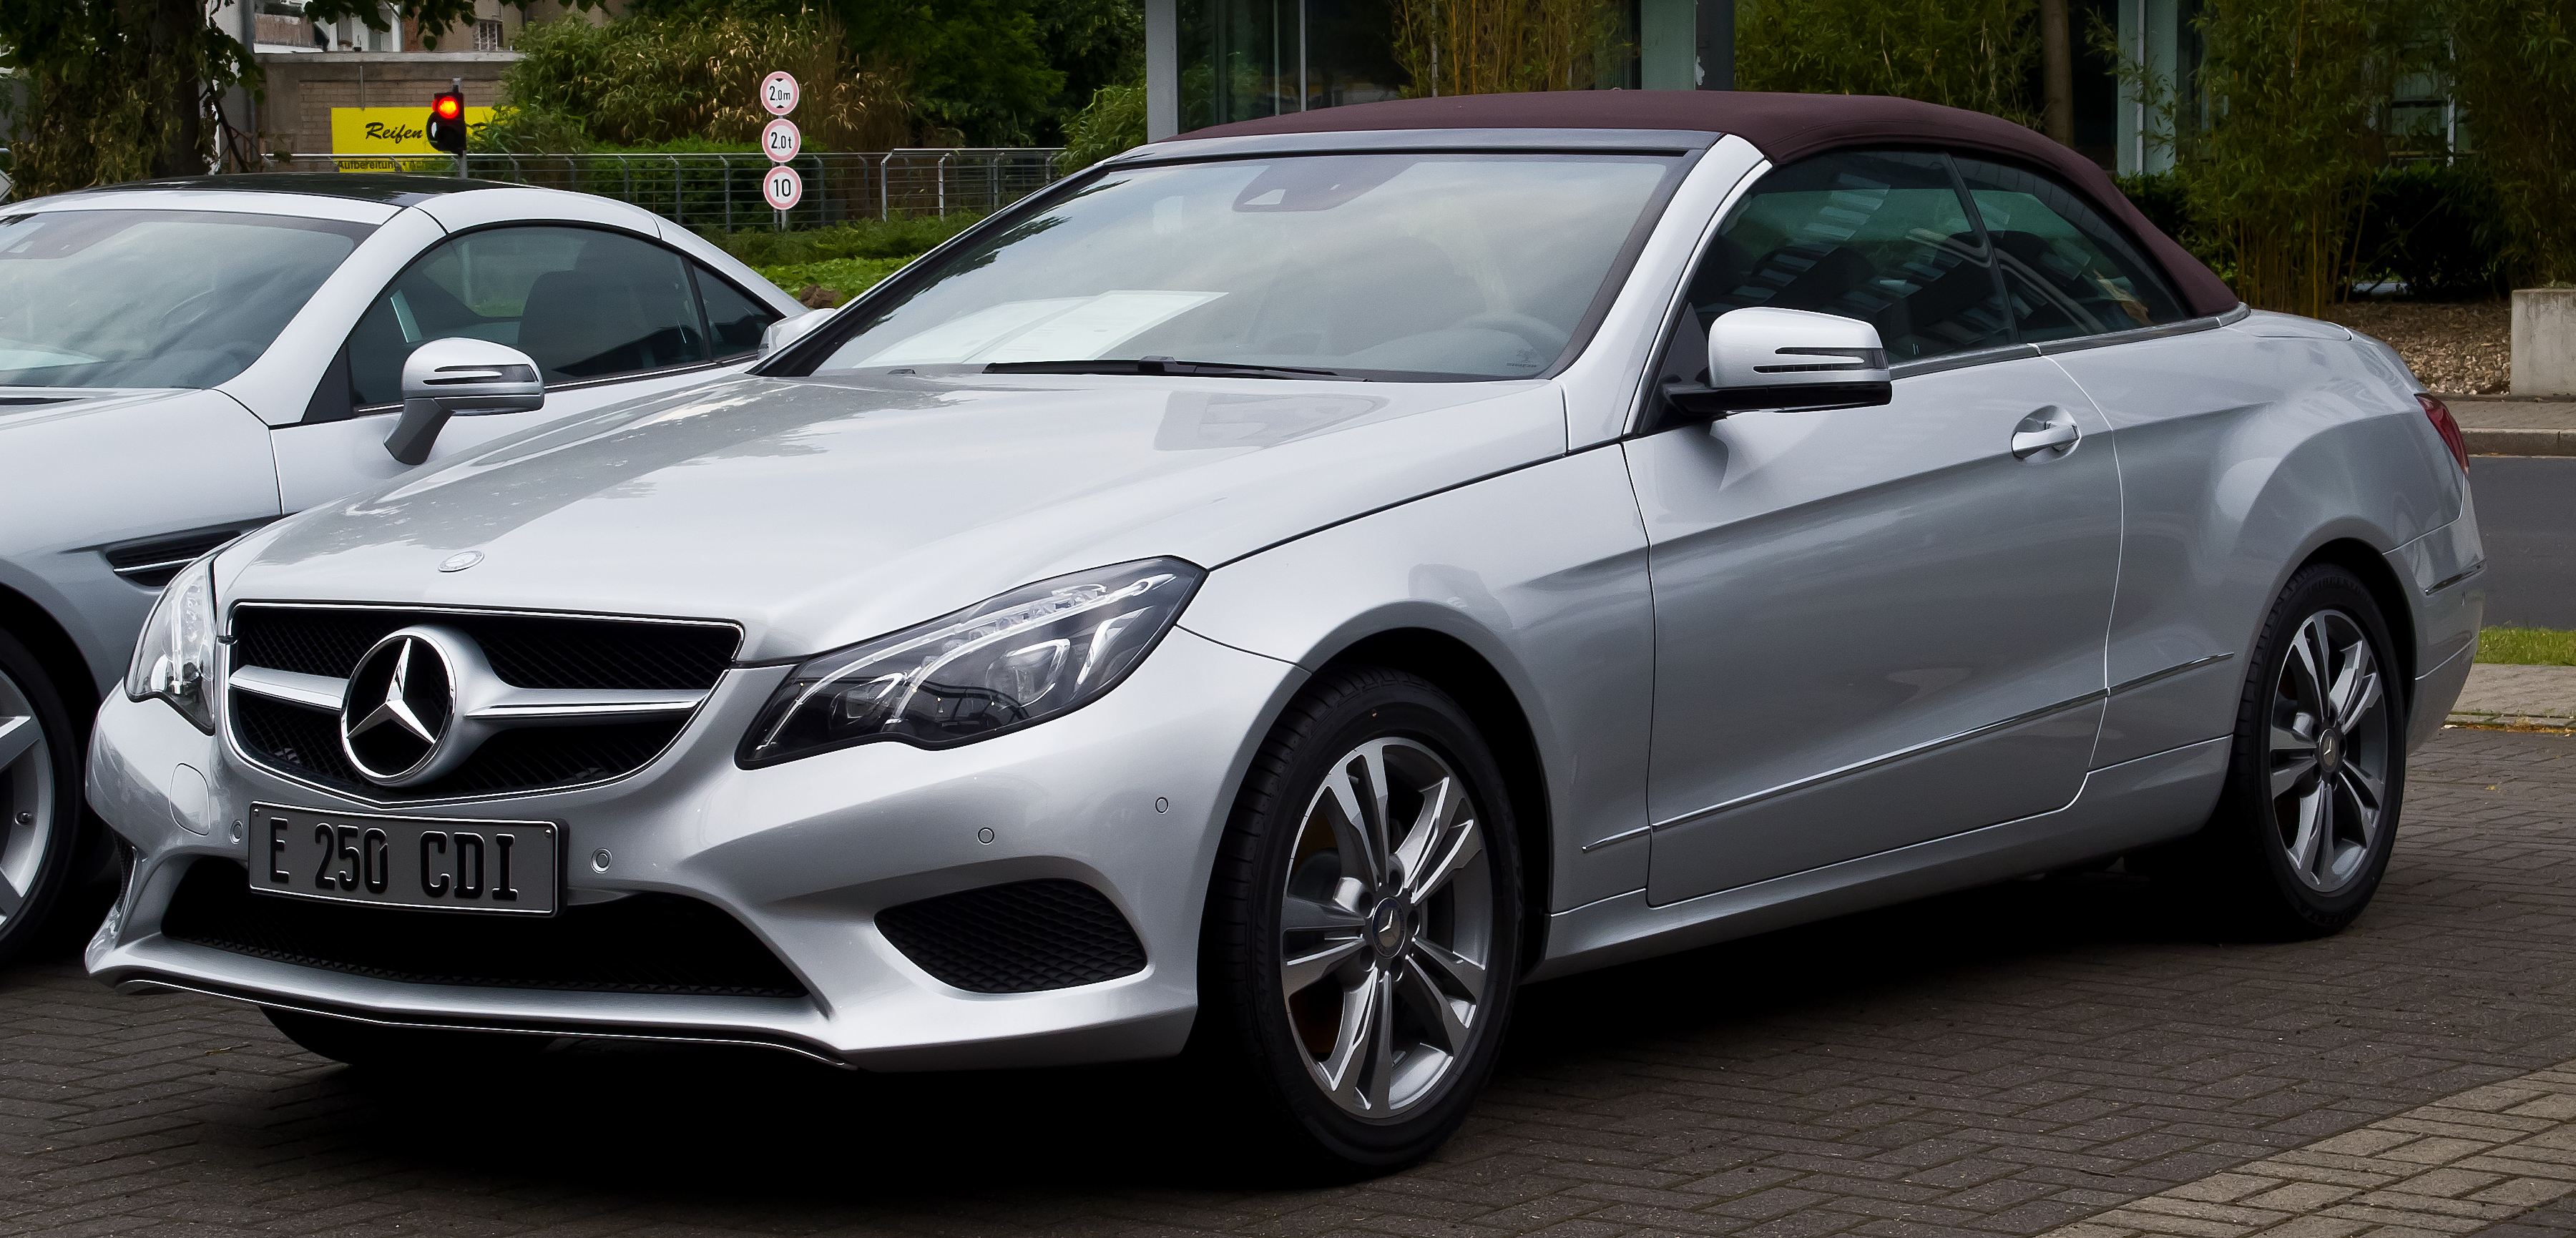 mercedes benz e 250 cdi cabriolet a 207 facelift frontansicht 13 juni 2014. Black Bedroom Furniture Sets. Home Design Ideas